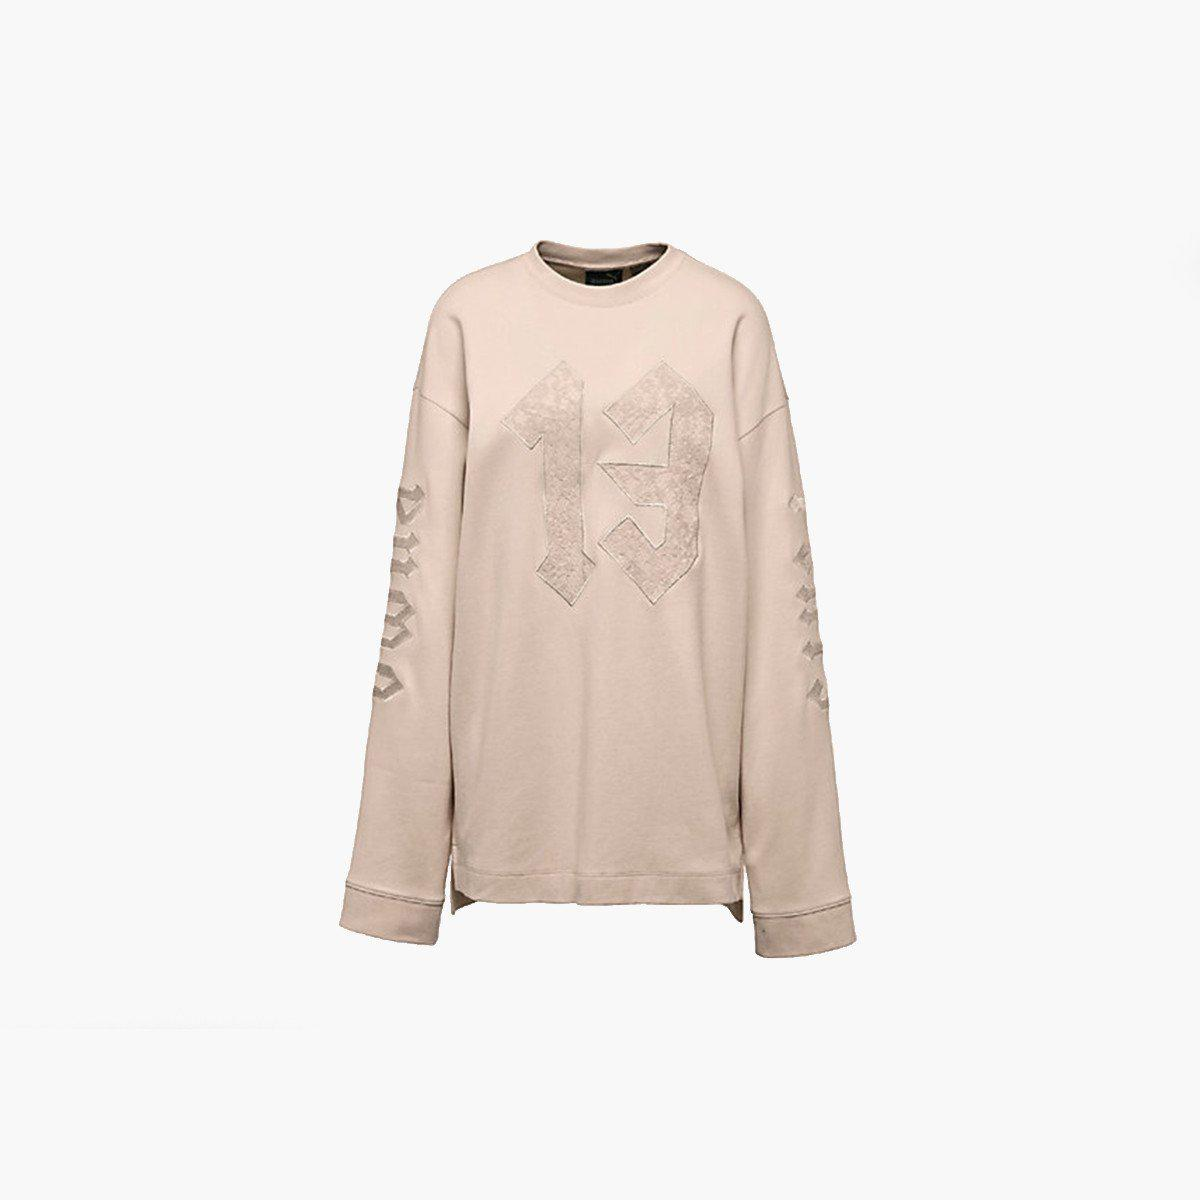 c1fcb24890f8 Lyst - PUMA Ls Graphic Crew Neck T-shirt By Rihanna in Natural